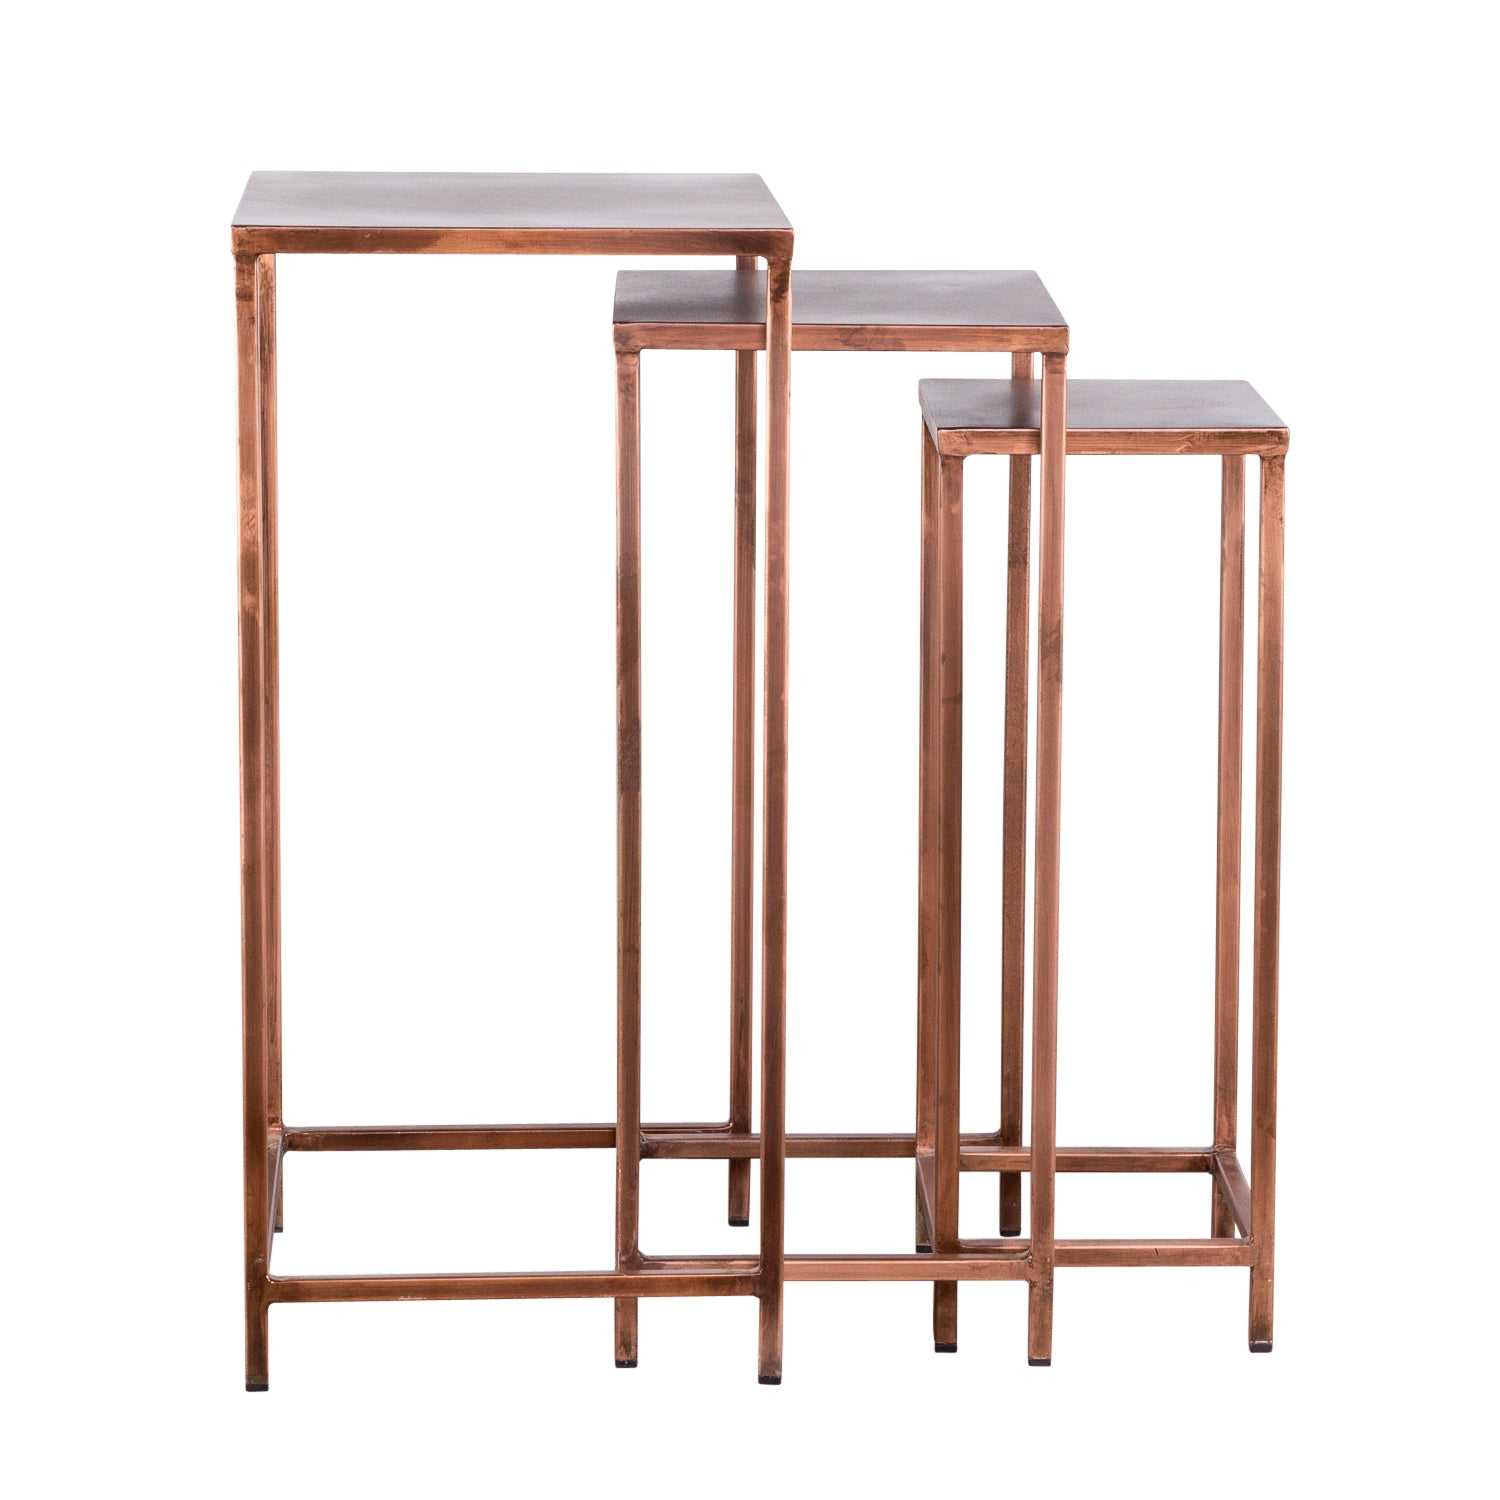 Home U2014 Pollock Nesting Tables   Tall. Product Image ...